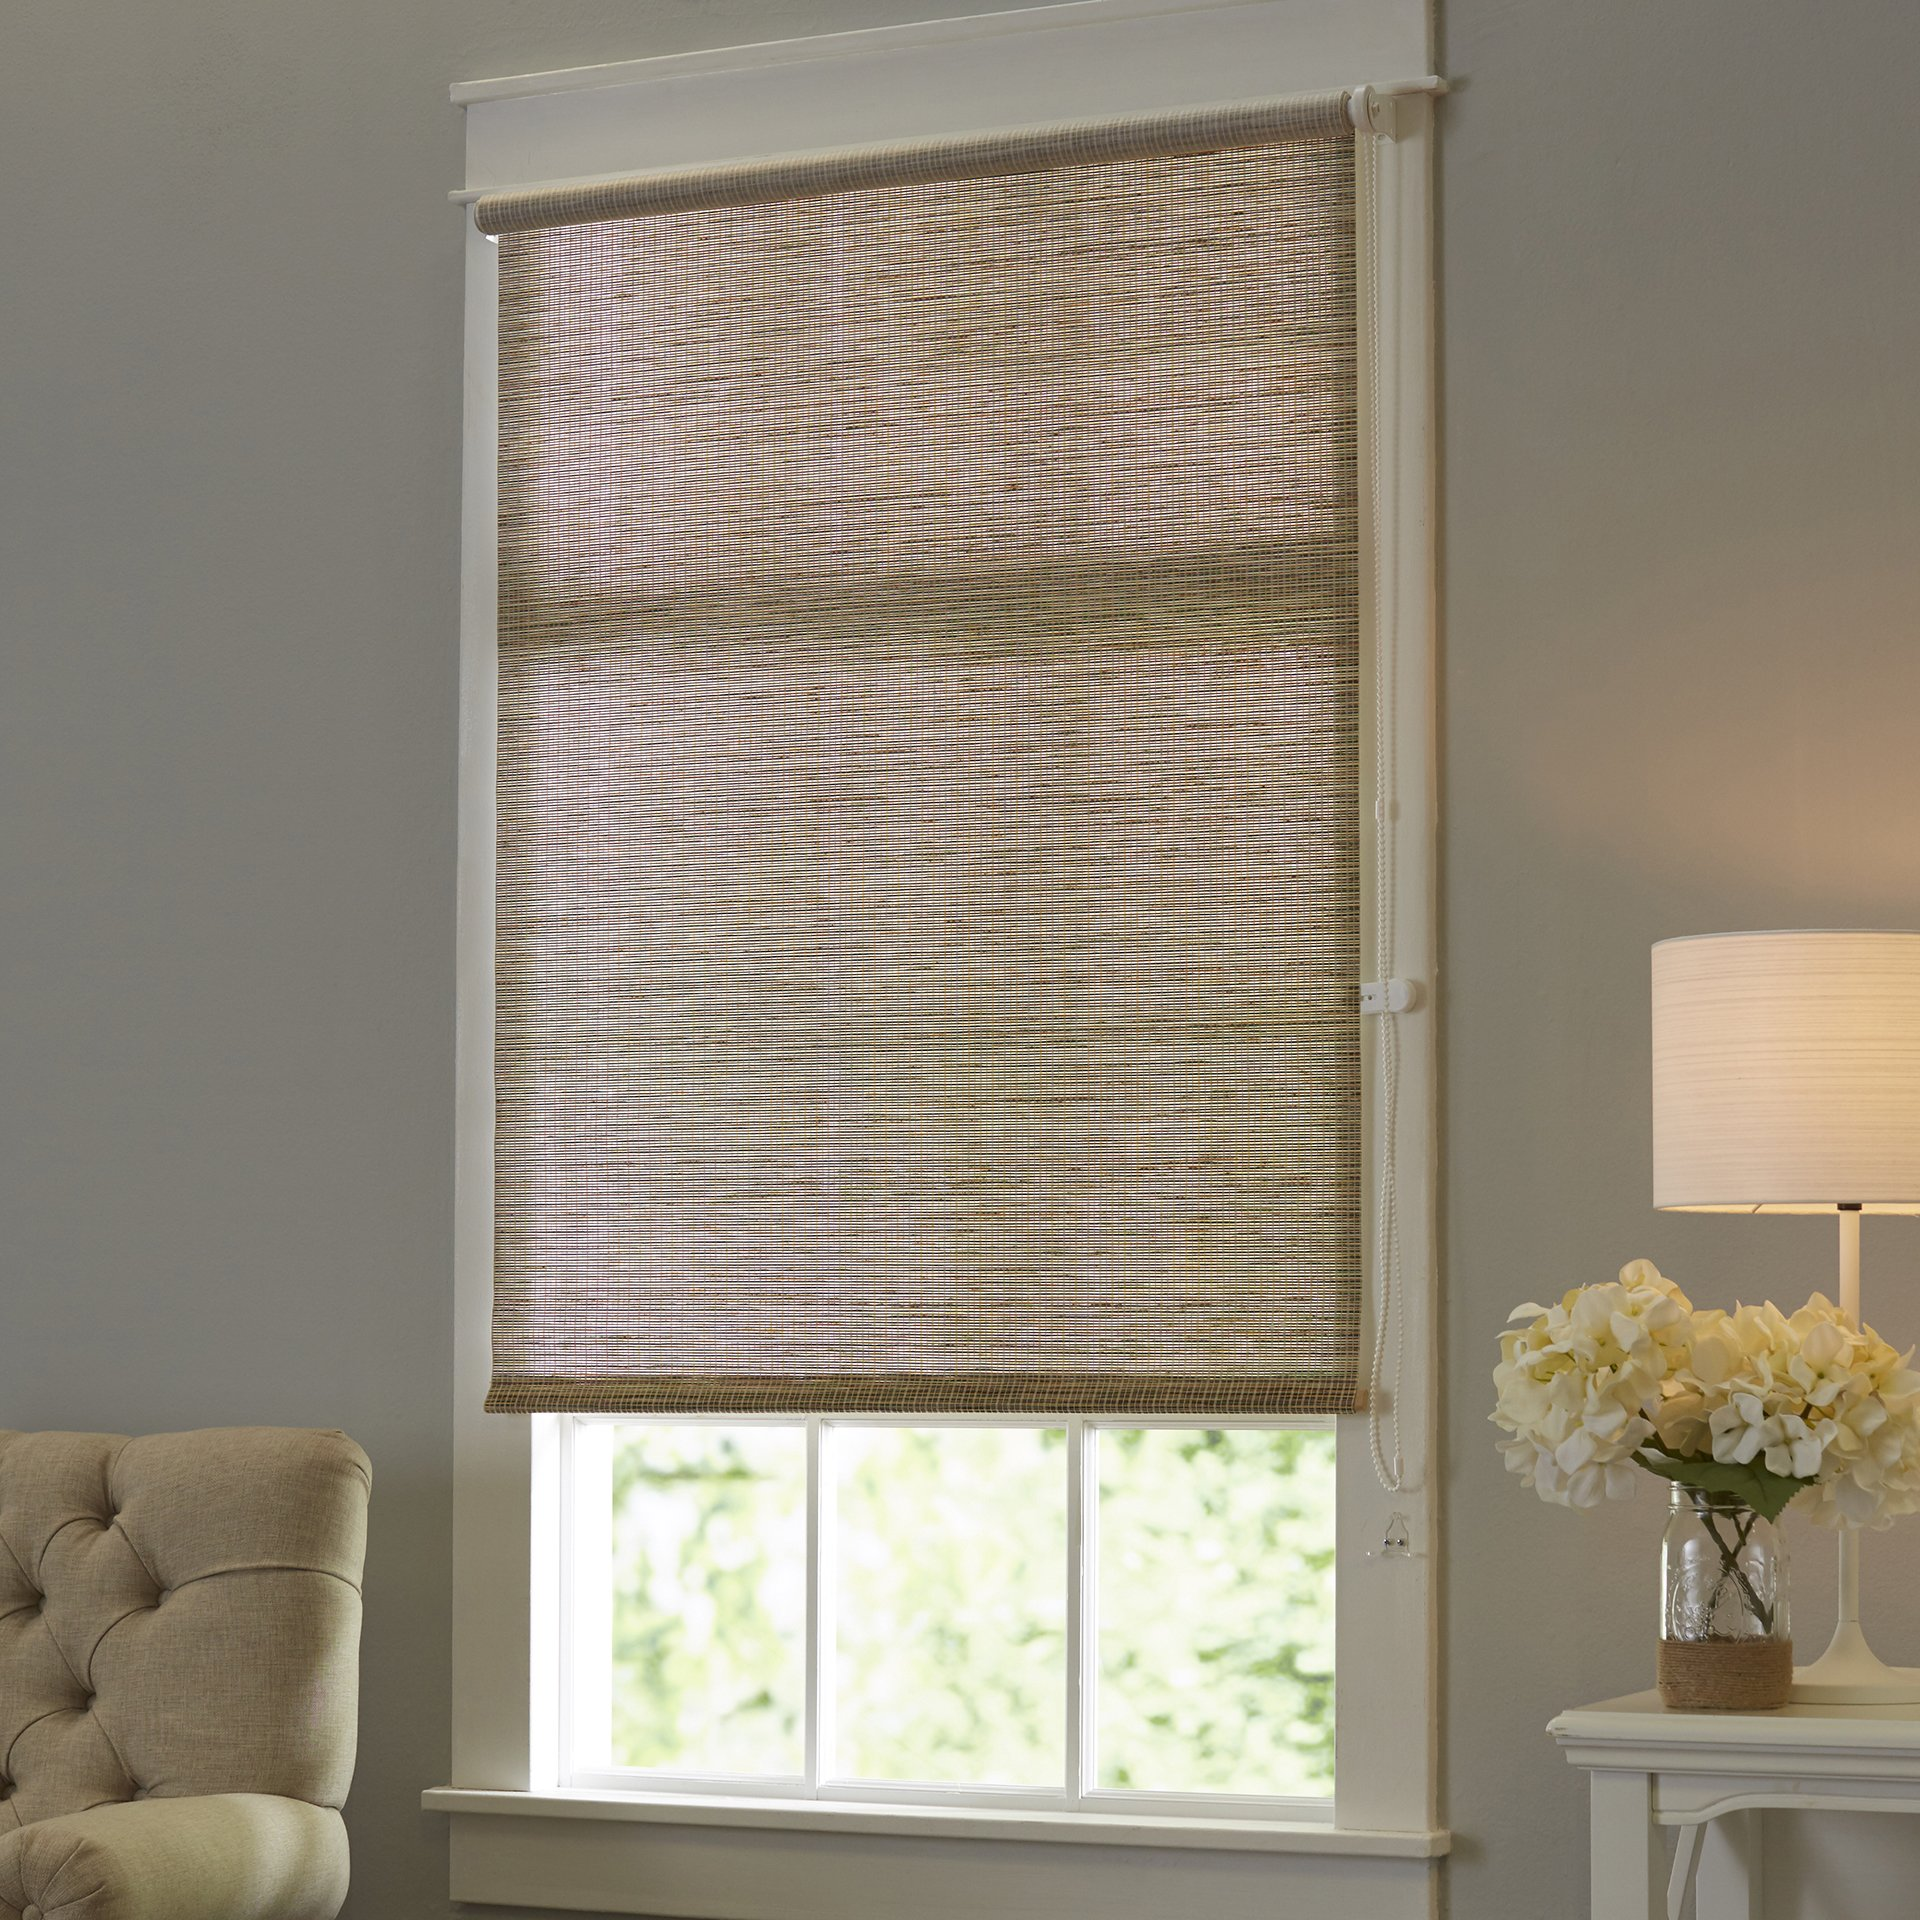 Telephone Number for Menards | Menards Window Blinds | Lichtenberg Curtains